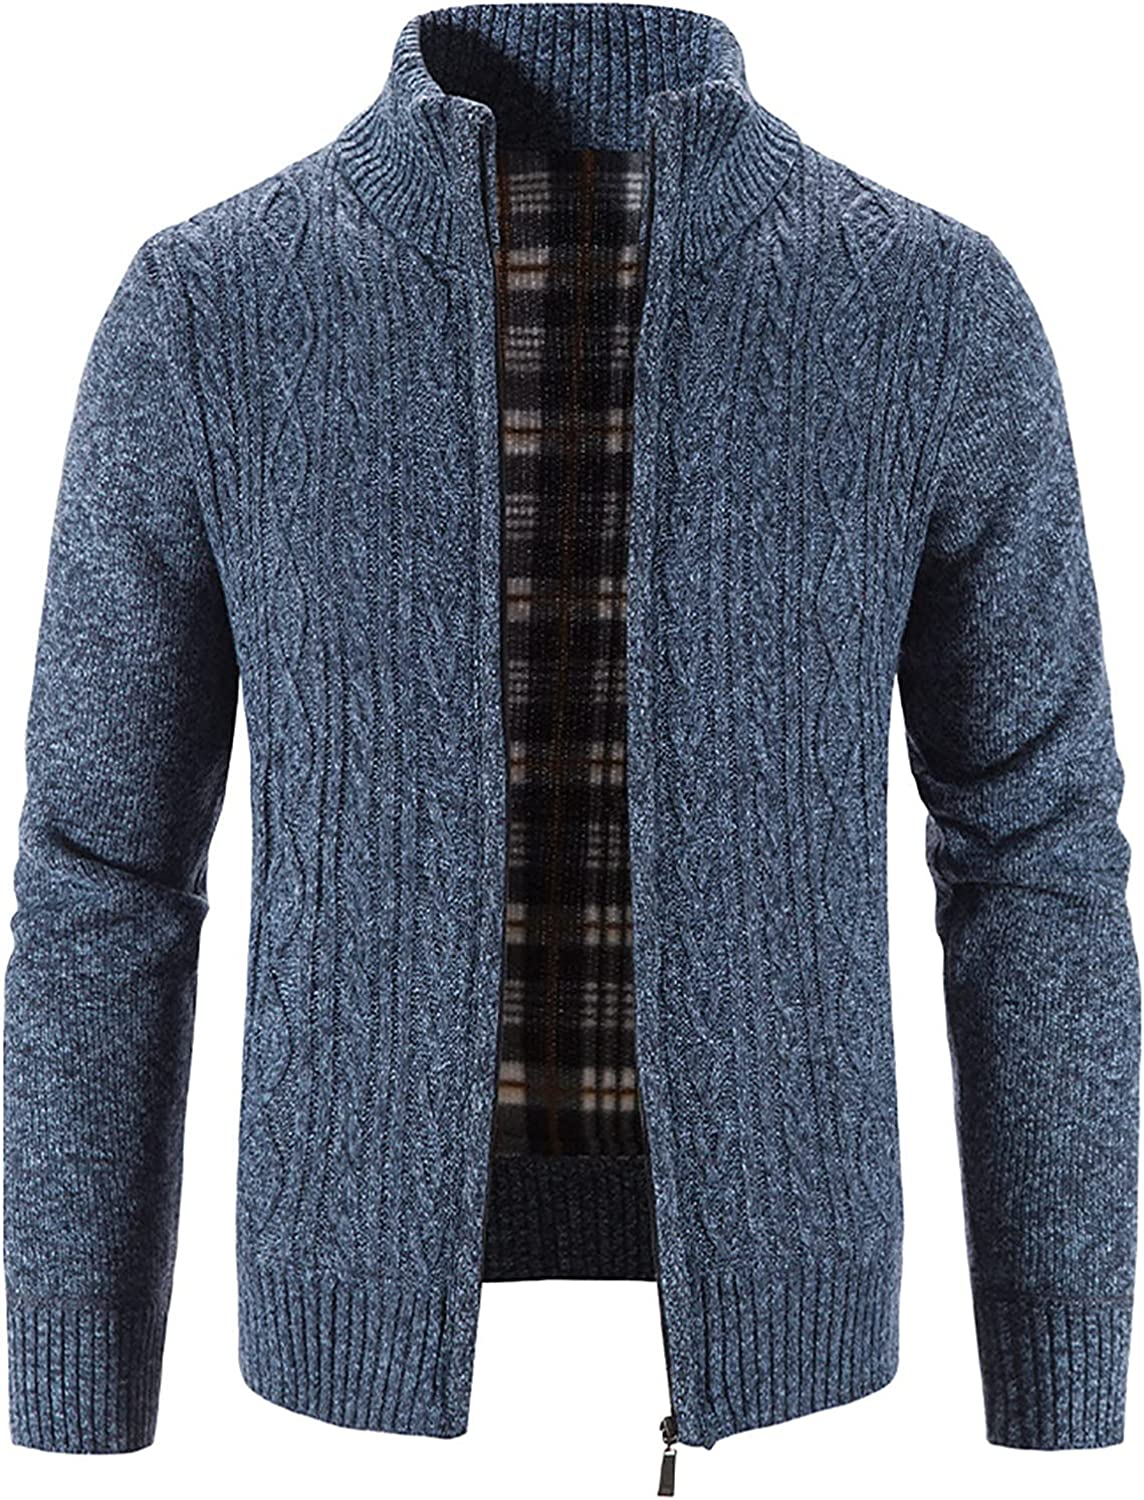 Men's Solid Color Cardigan Sweaters Full Zip Up Stand Collar Slim Fit Casual Knitted Sweater with 2 Front Pockets